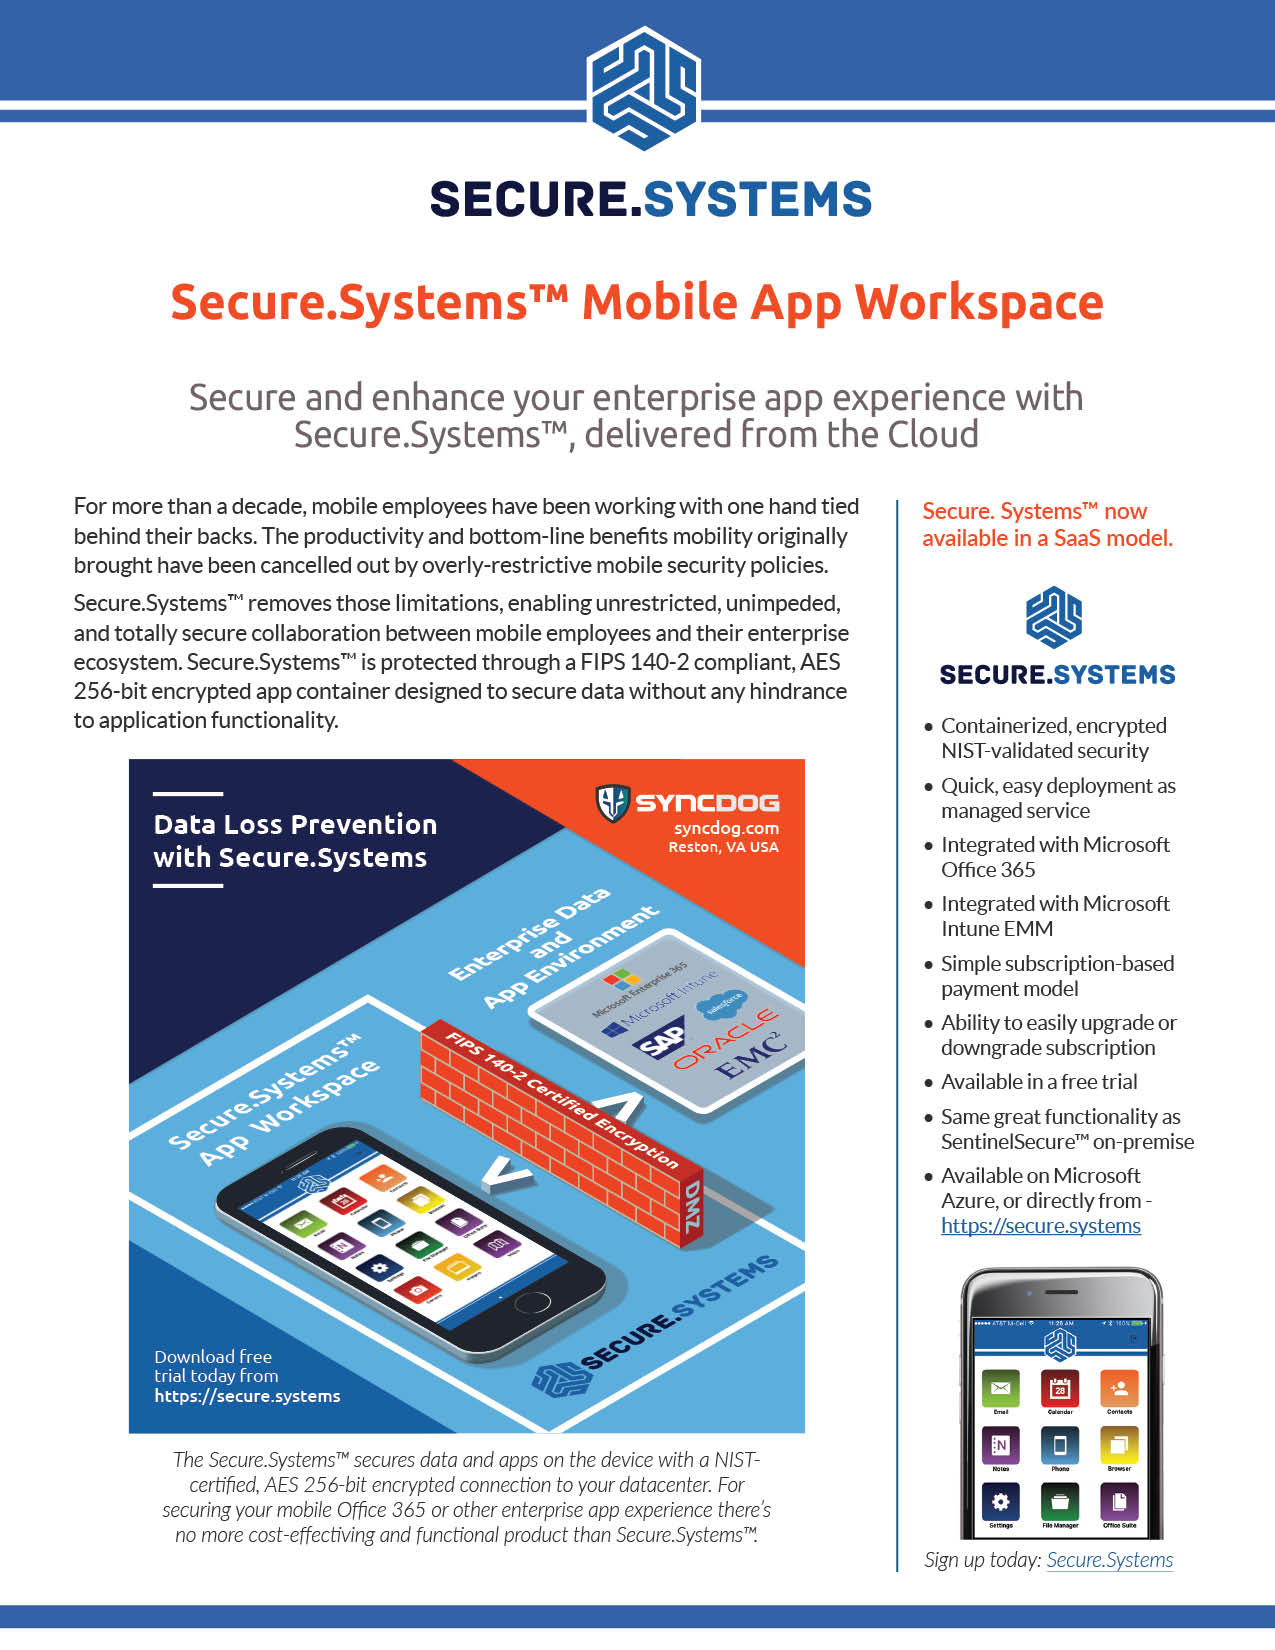 Secure.Systems Mobile App Work space